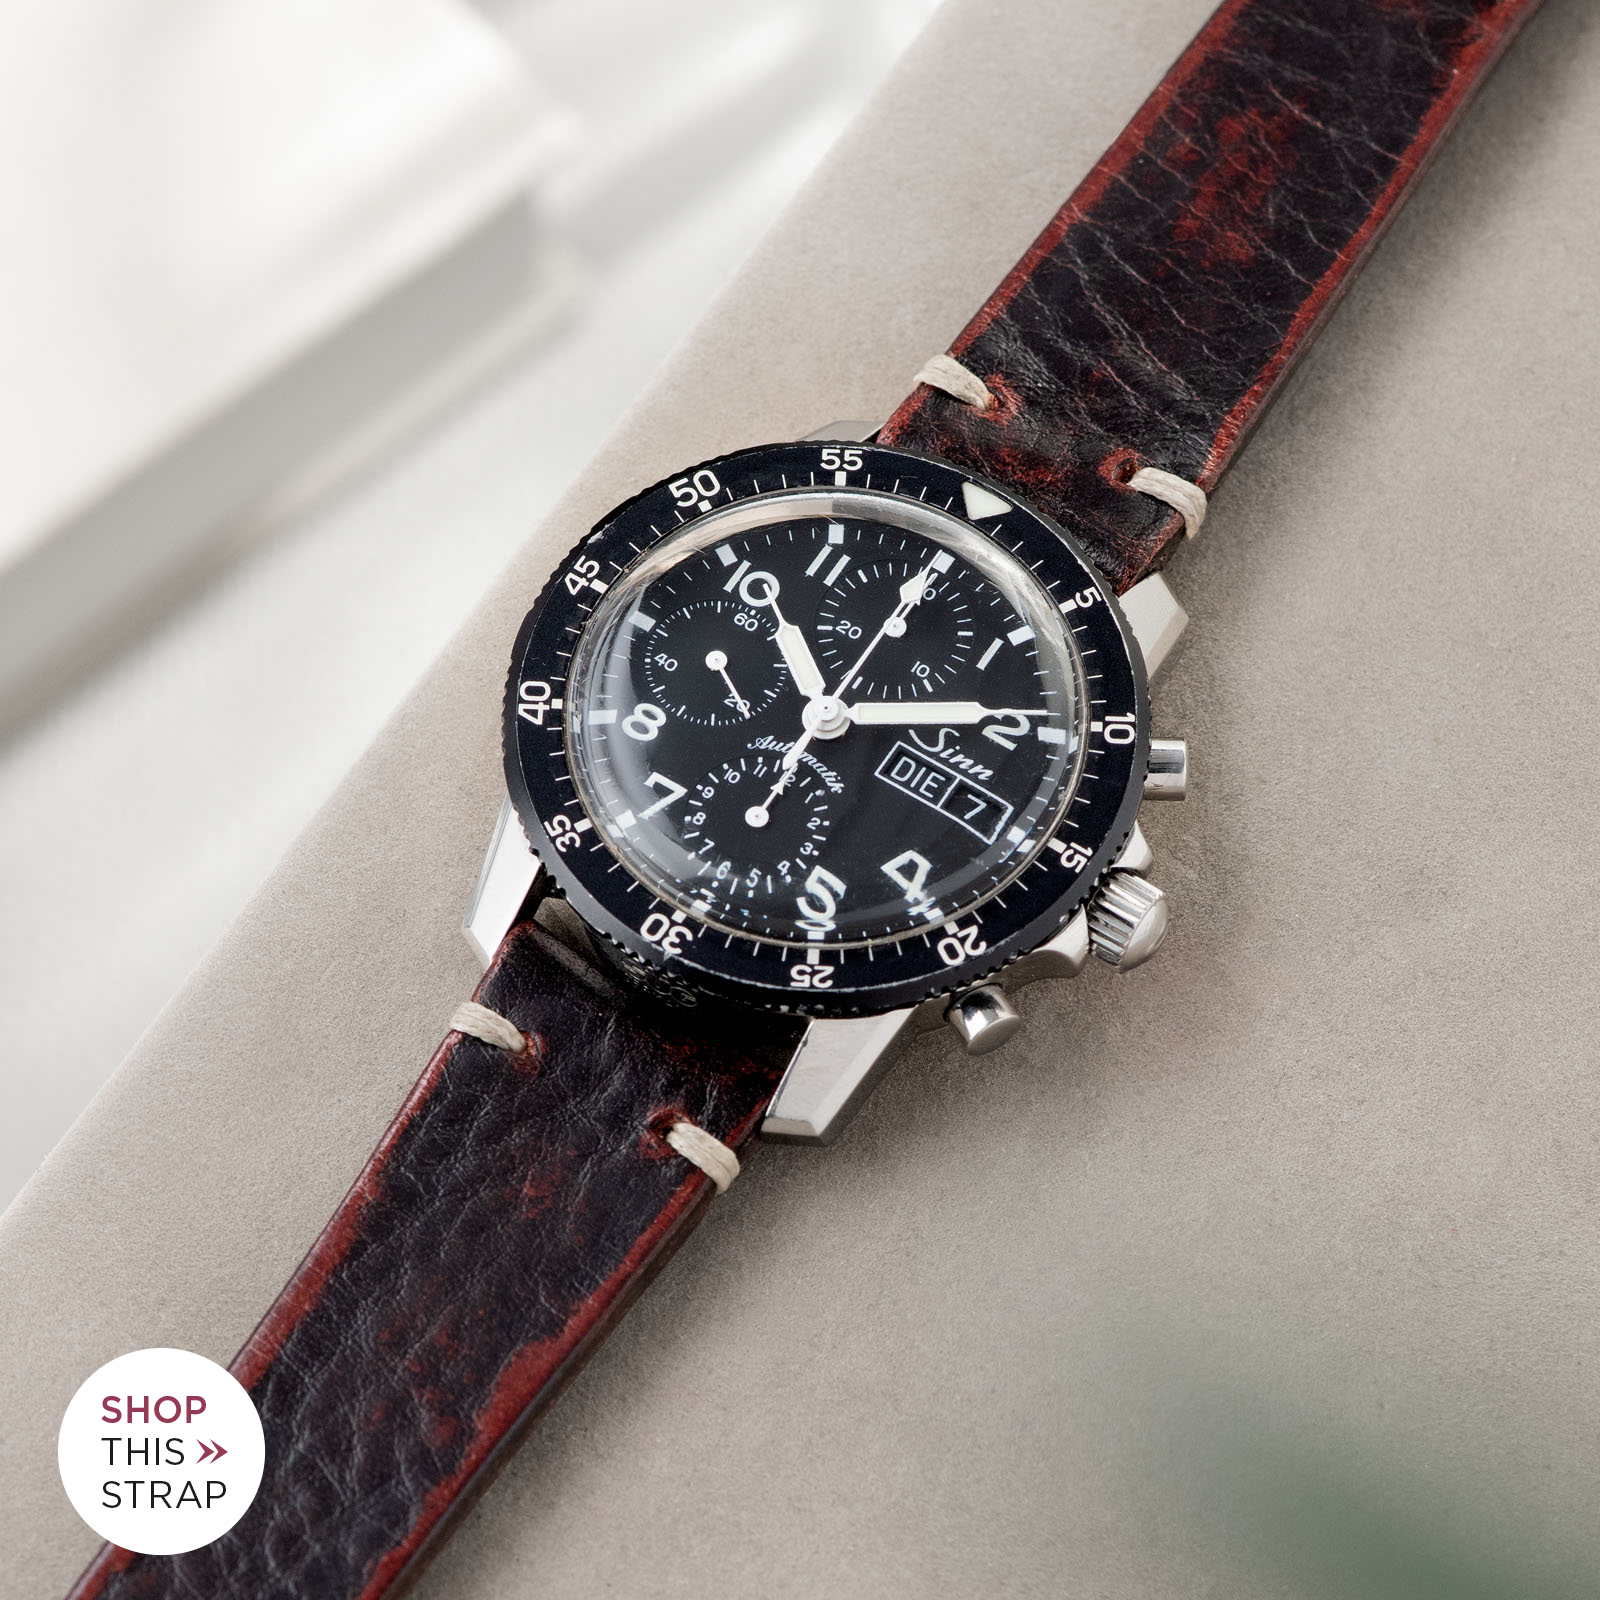 Bulang and Sons_Strap Guide_Sinn 103_Diablo Black Leather Watch Strap